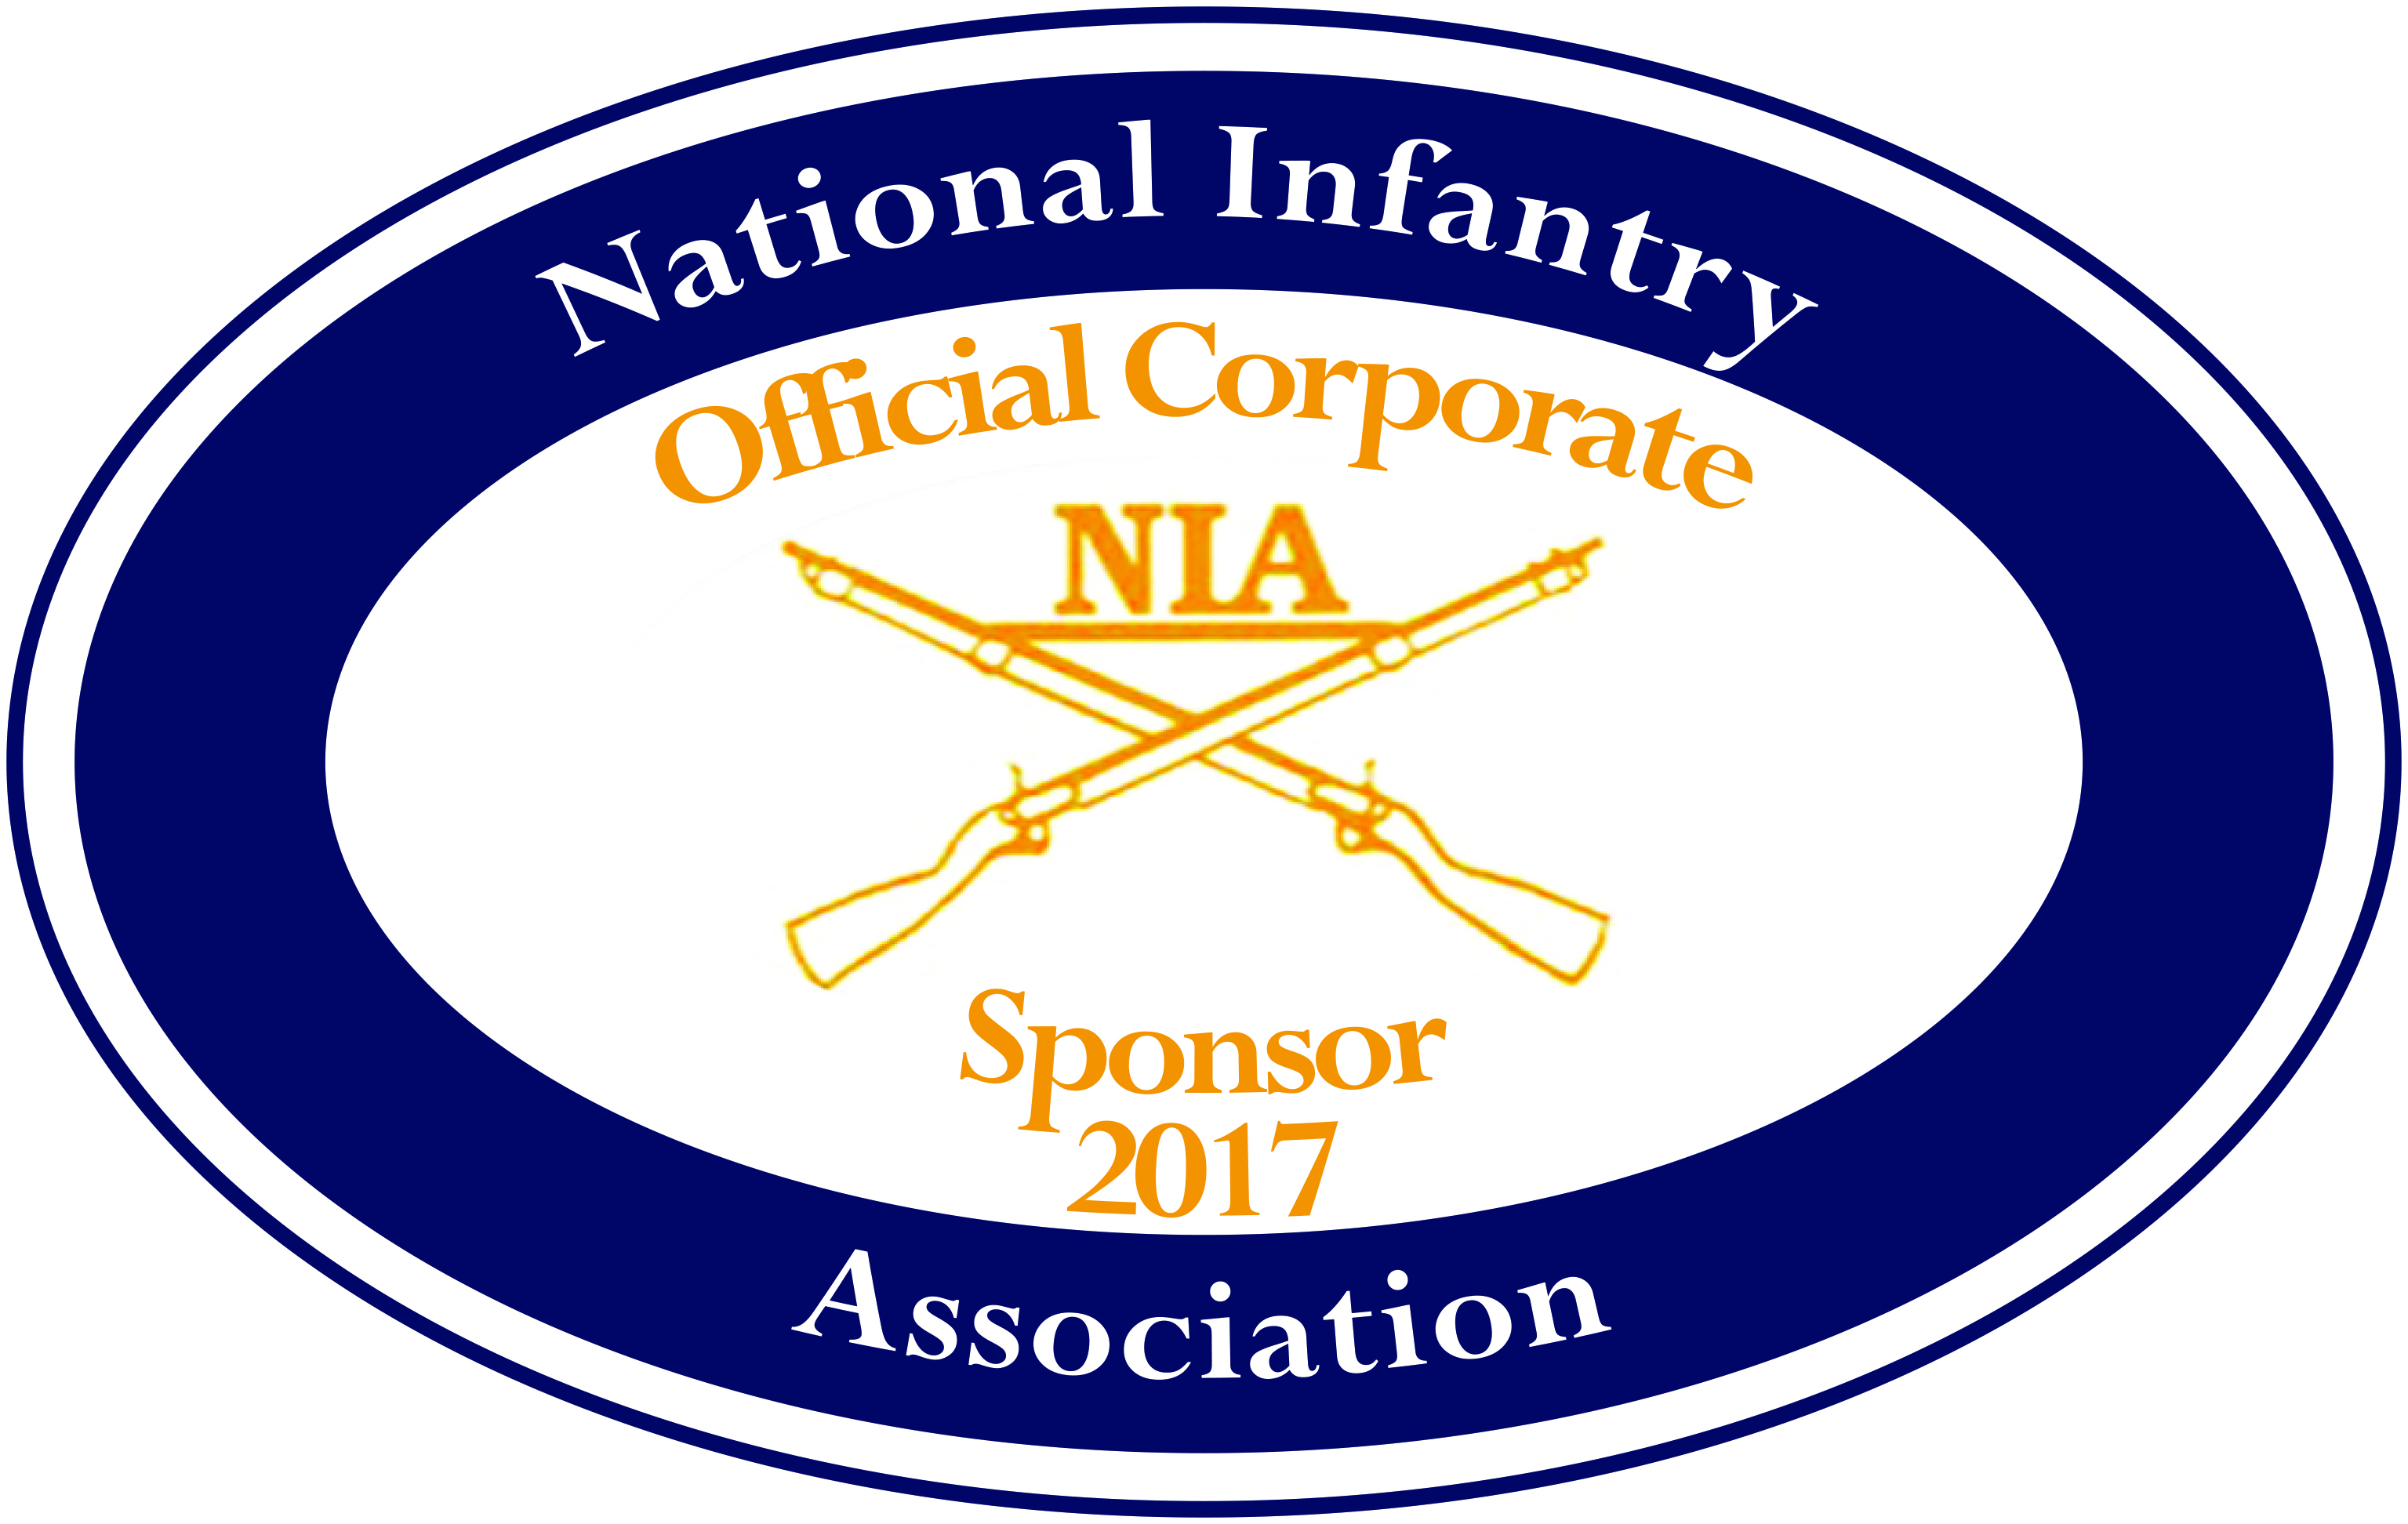 nia-logo-official-corporate-sponsor-2017.jpg